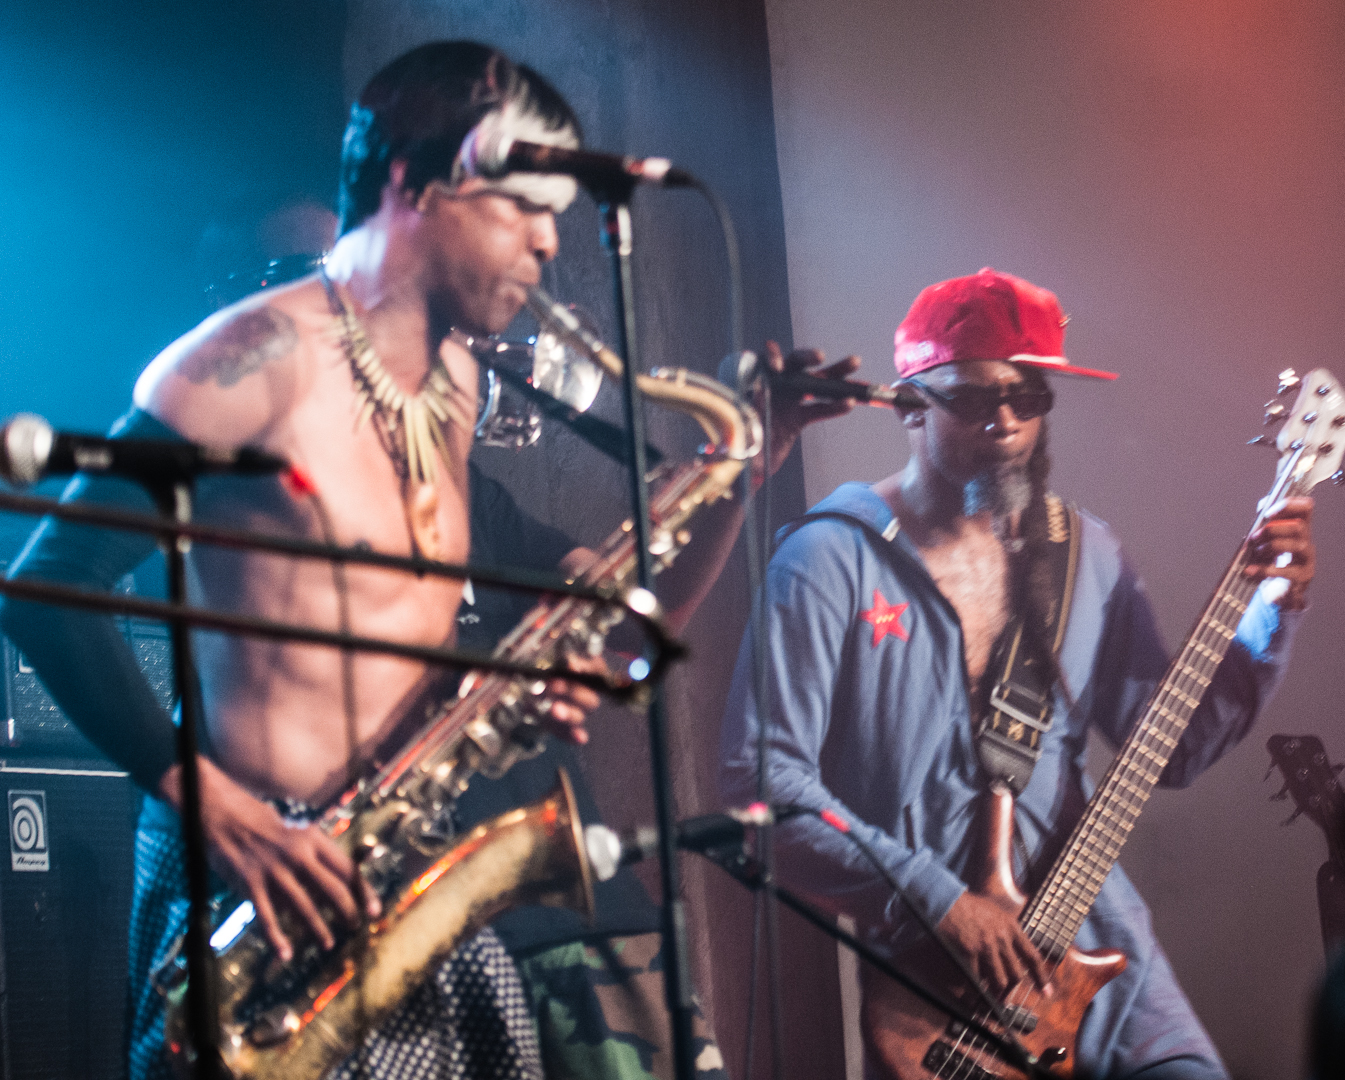 Angelo Moore and John Norwood Fisher with Fishbone at the Montreal International Jazz Festival 2012